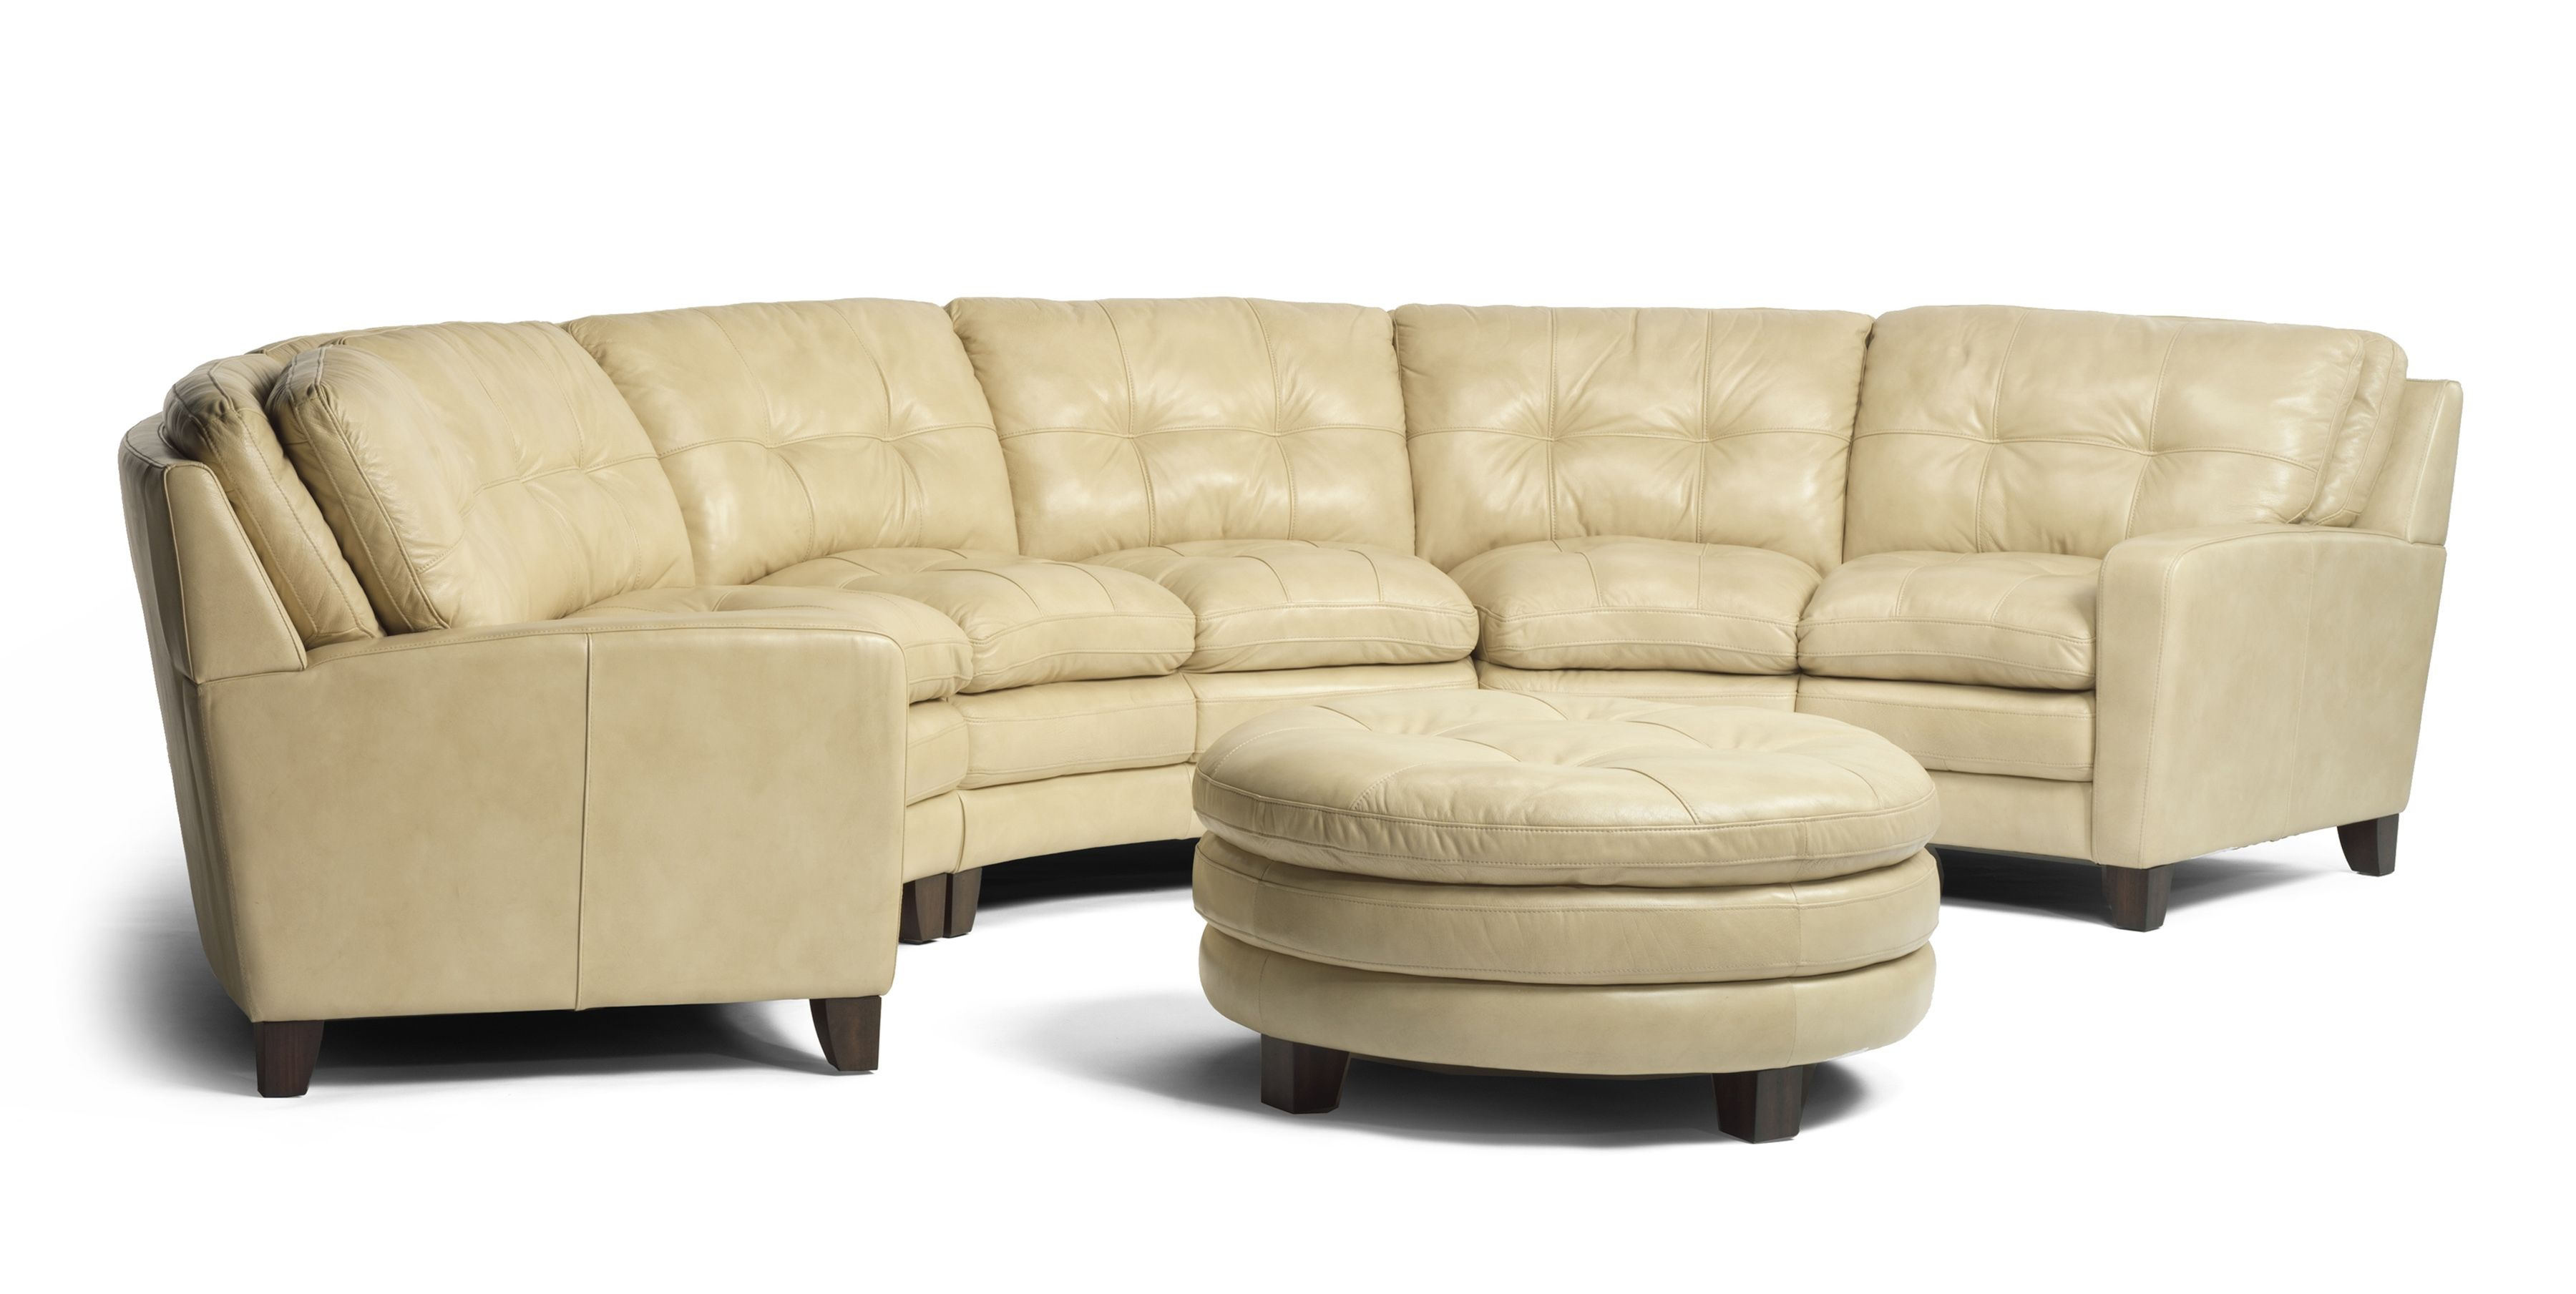 Leather Round Sofas Manufacturers Gumtree Londonderry Gorgeous Cream Conversation Sofa Awfurniture